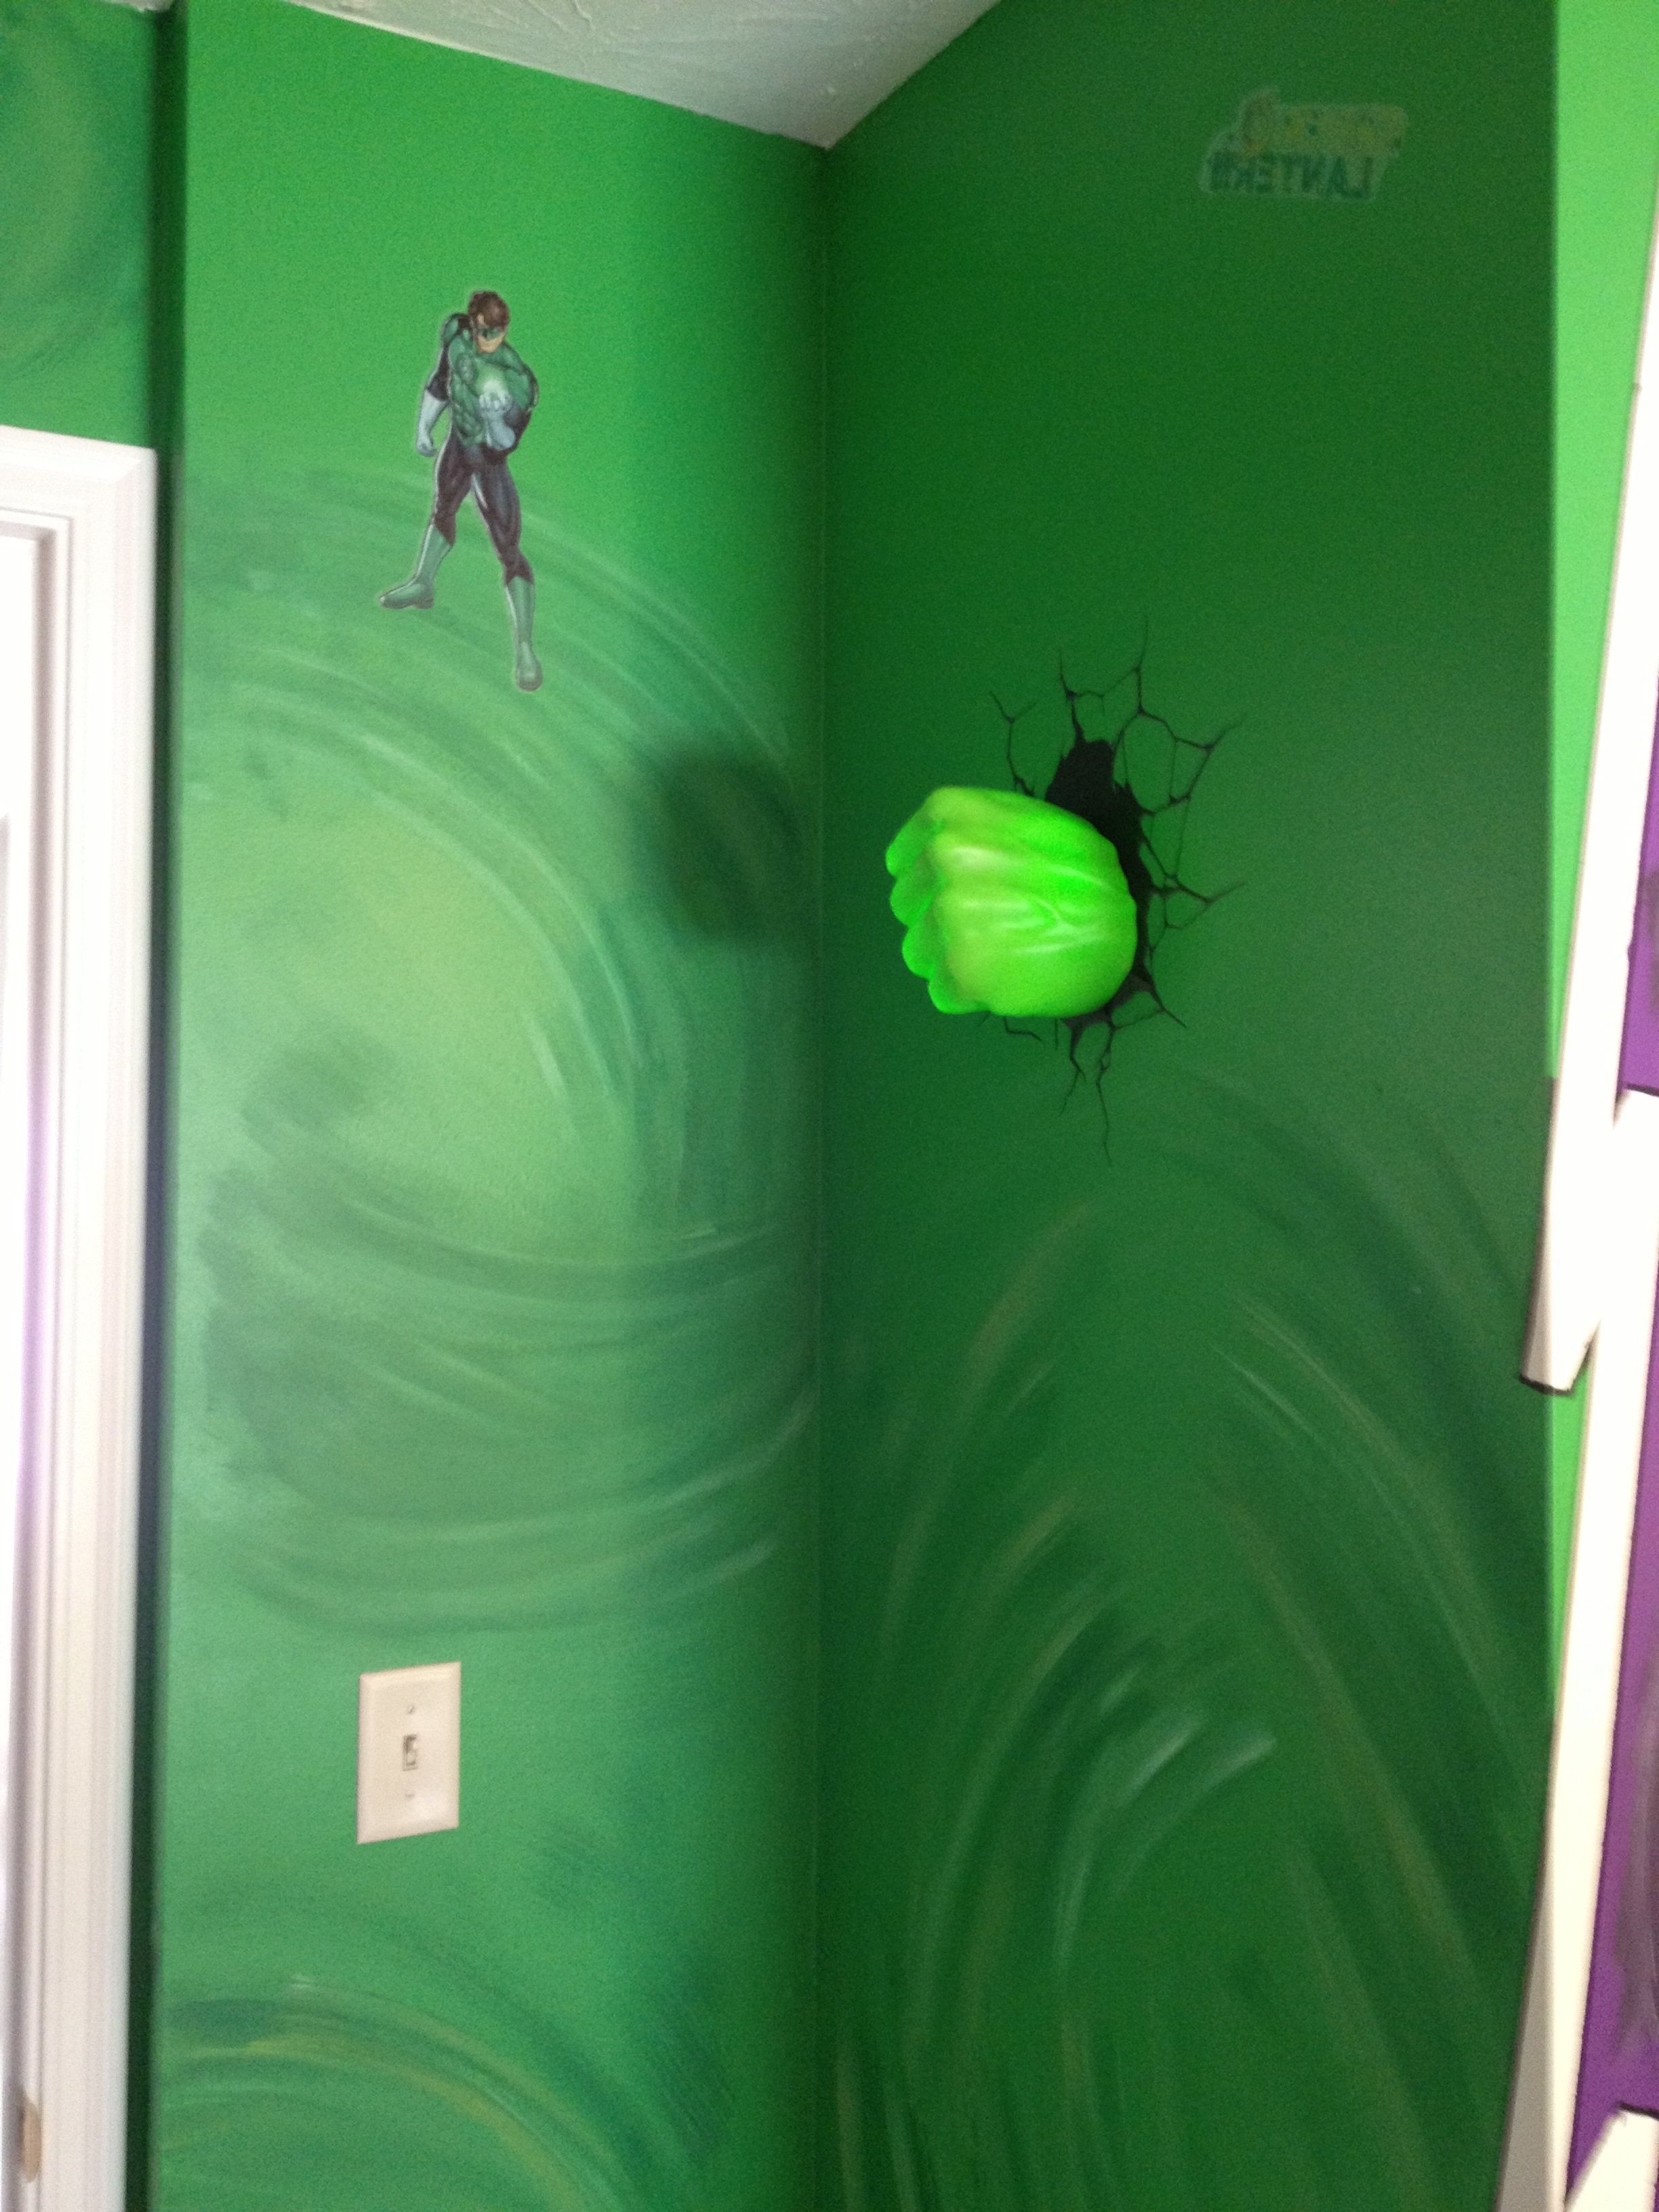 Hulk Hand Smashing Through Wall Just Inside Door It Kind Of Throughout 2018 Hulk Hand 3D Wall Art (View 10 of 15)